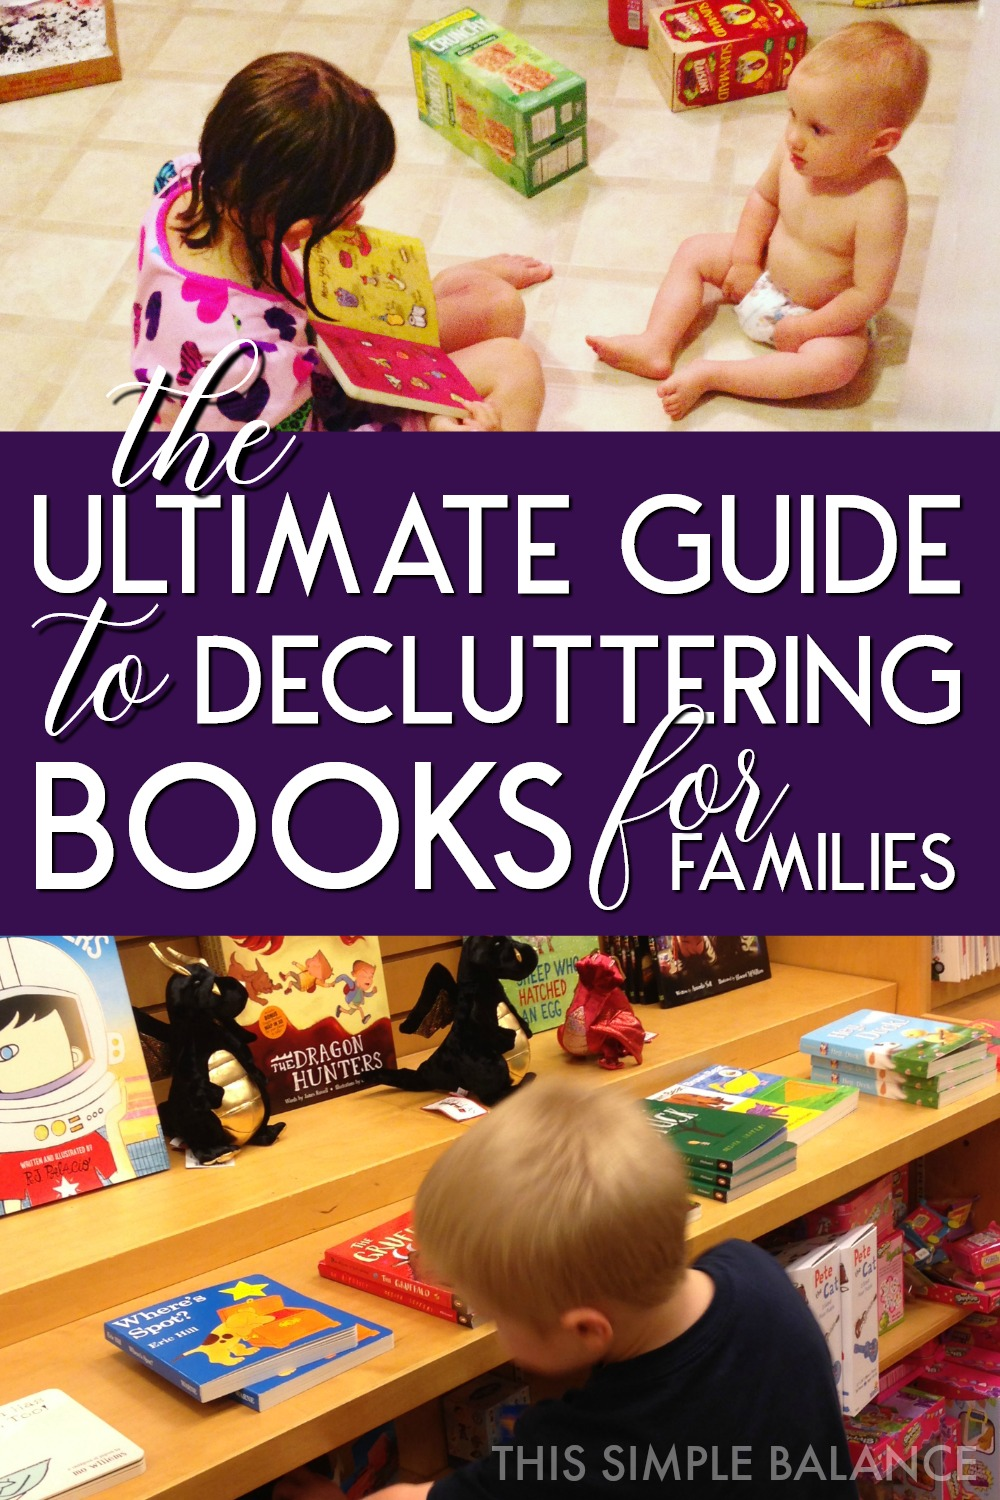 How to declutter books when you have kids: 6 fears parents face (and why you needn't worry), and 7 helpful questions for decluttering your books #declutteringideas